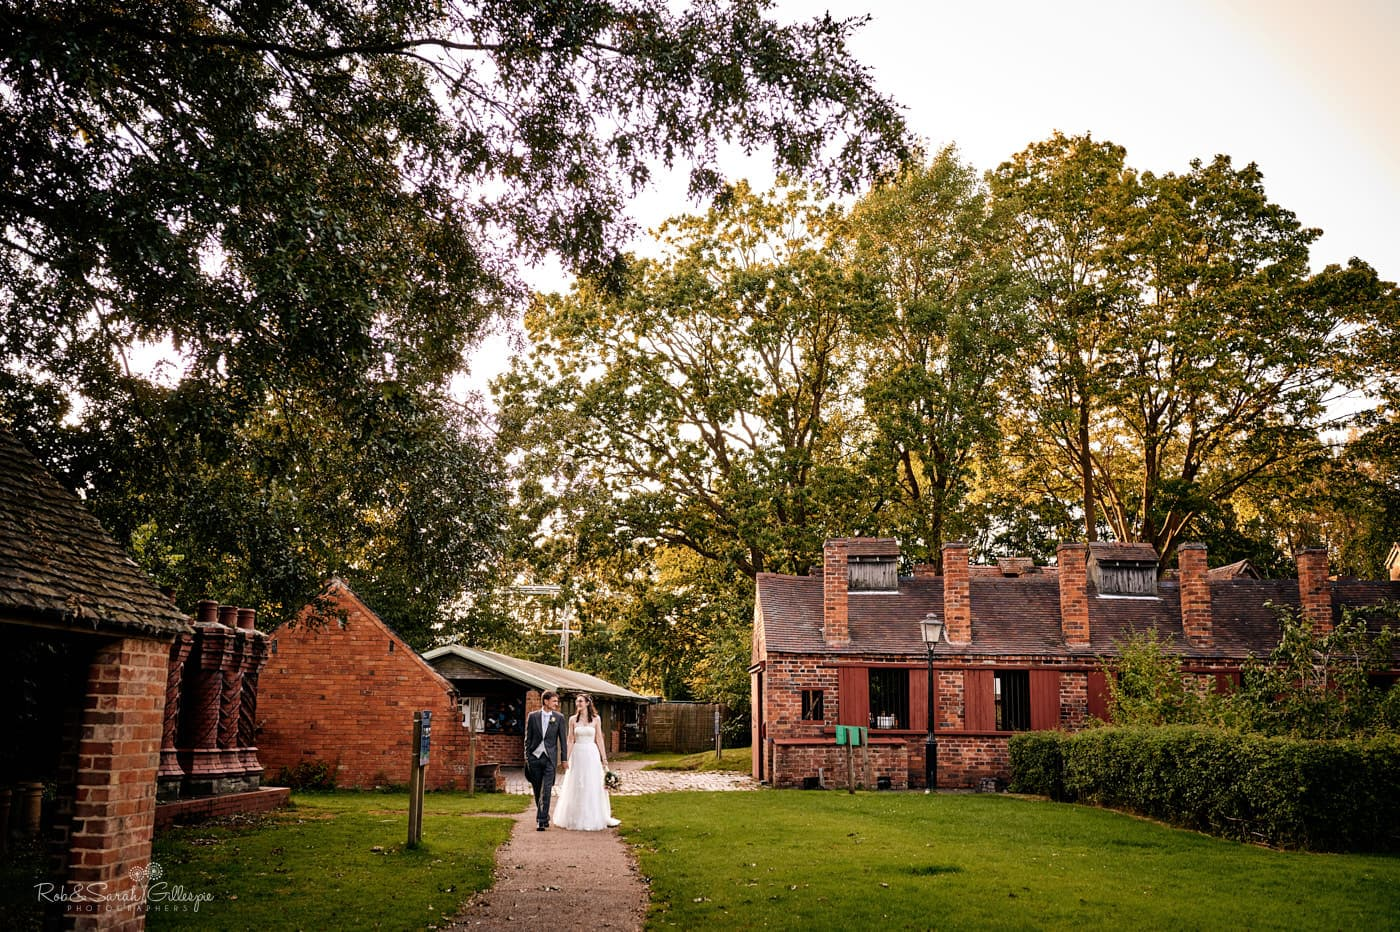 Bride and groom waking through Avoncroft Museum. Photographed by Avoncroft Museum wedding photographers Rob & Sarah Gillespie